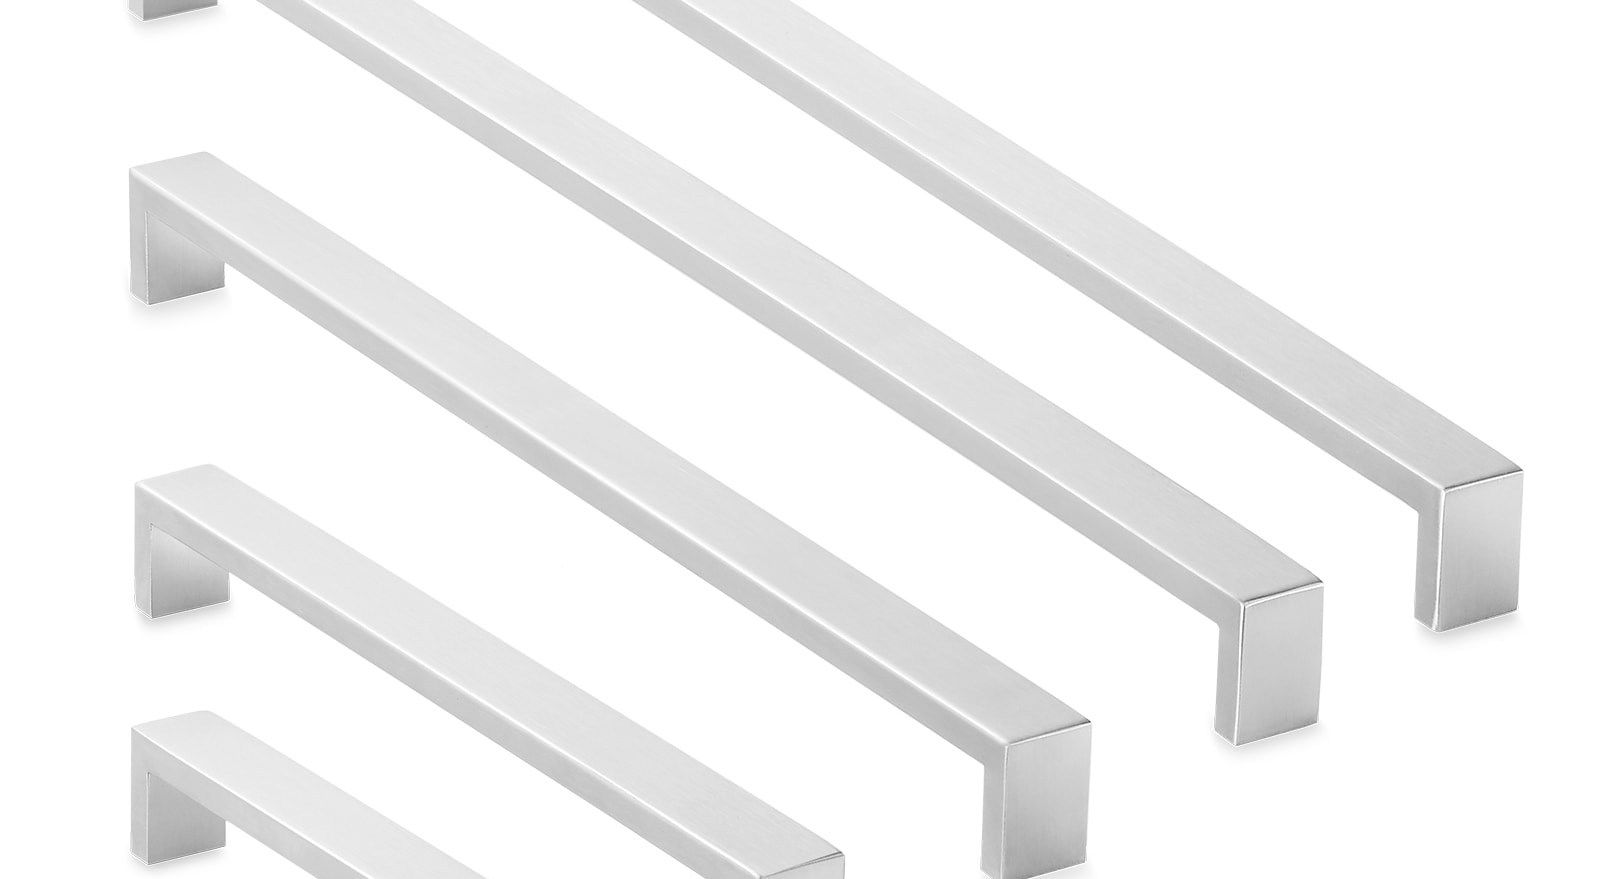 Shop Stainless Steel Cabinet Hardware Brushed Satin Nickel | Brushed Stainless Steel Handrail | Rectangle | Glass Panel Wooden Handrail | Brushed Chrome | Matte Finish | Flat Bar Steel